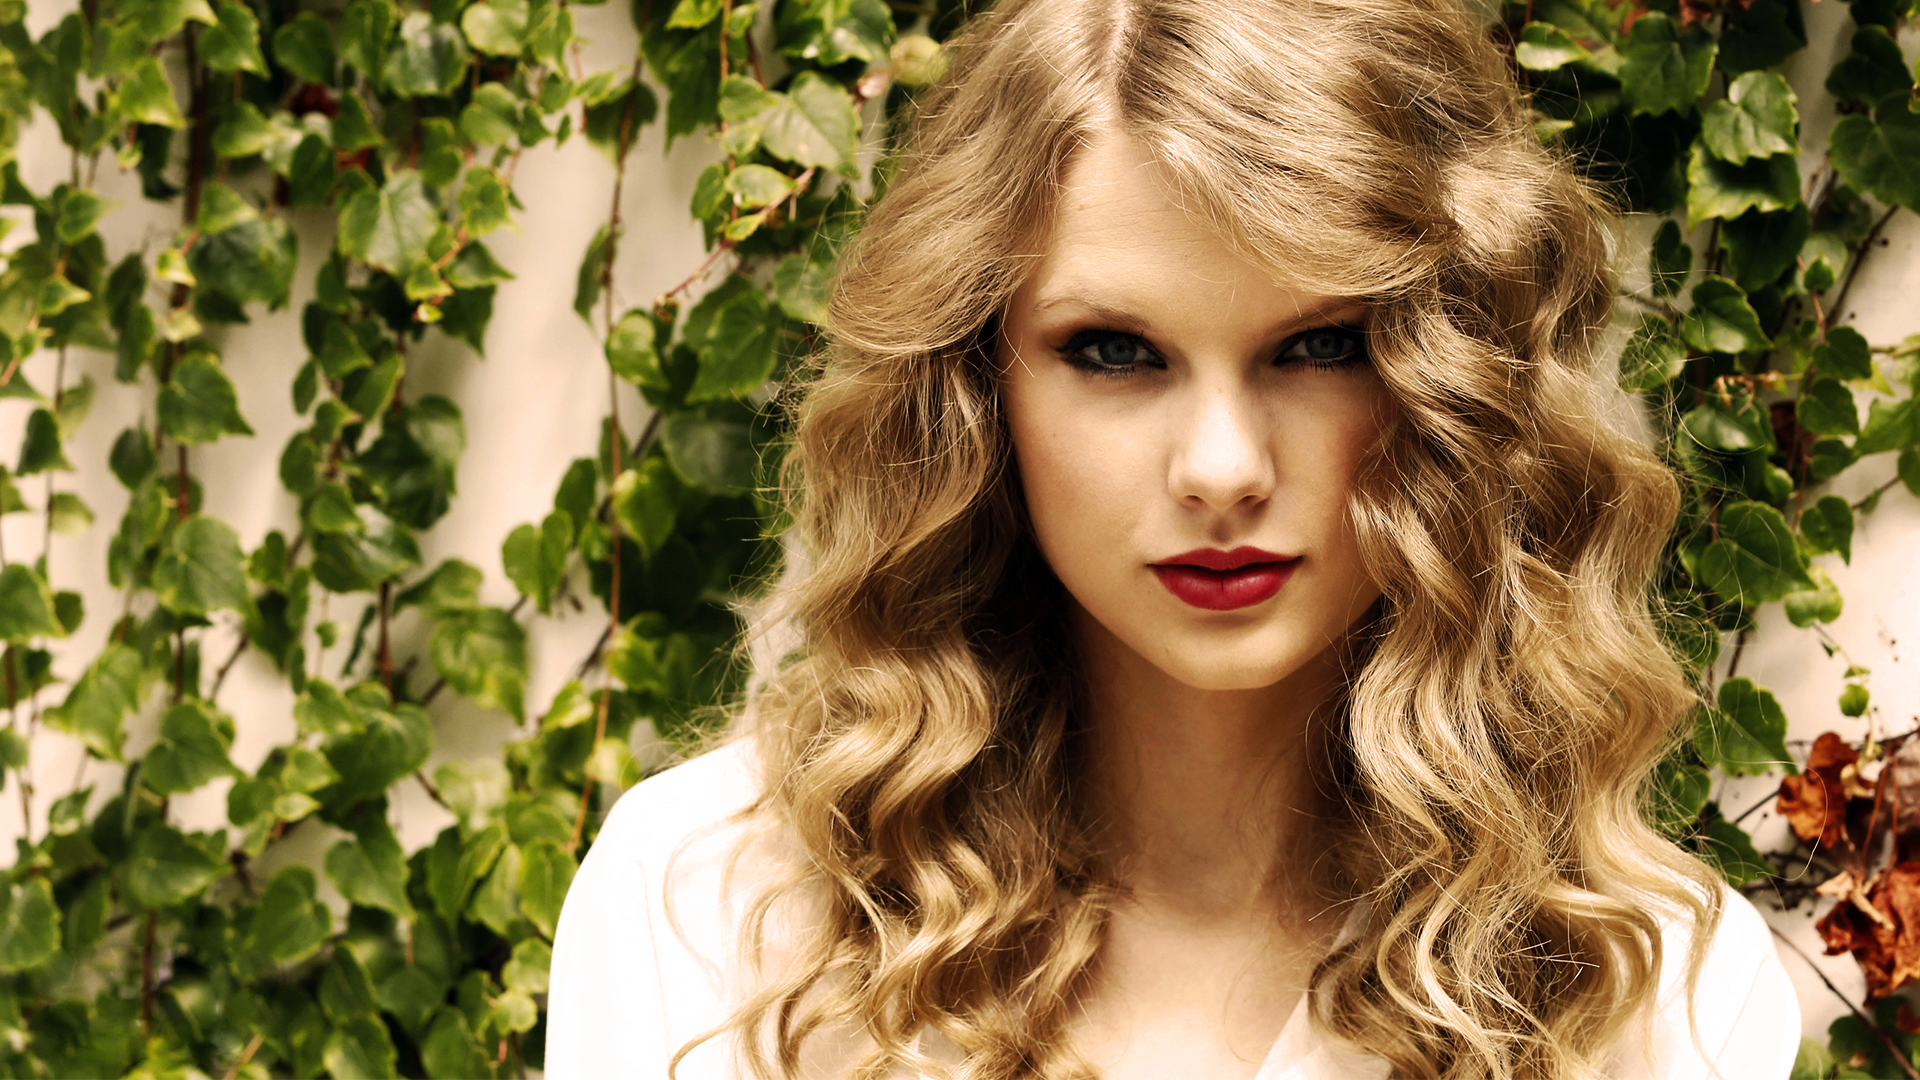 Taylor Swift Wallpapers Pictures Images